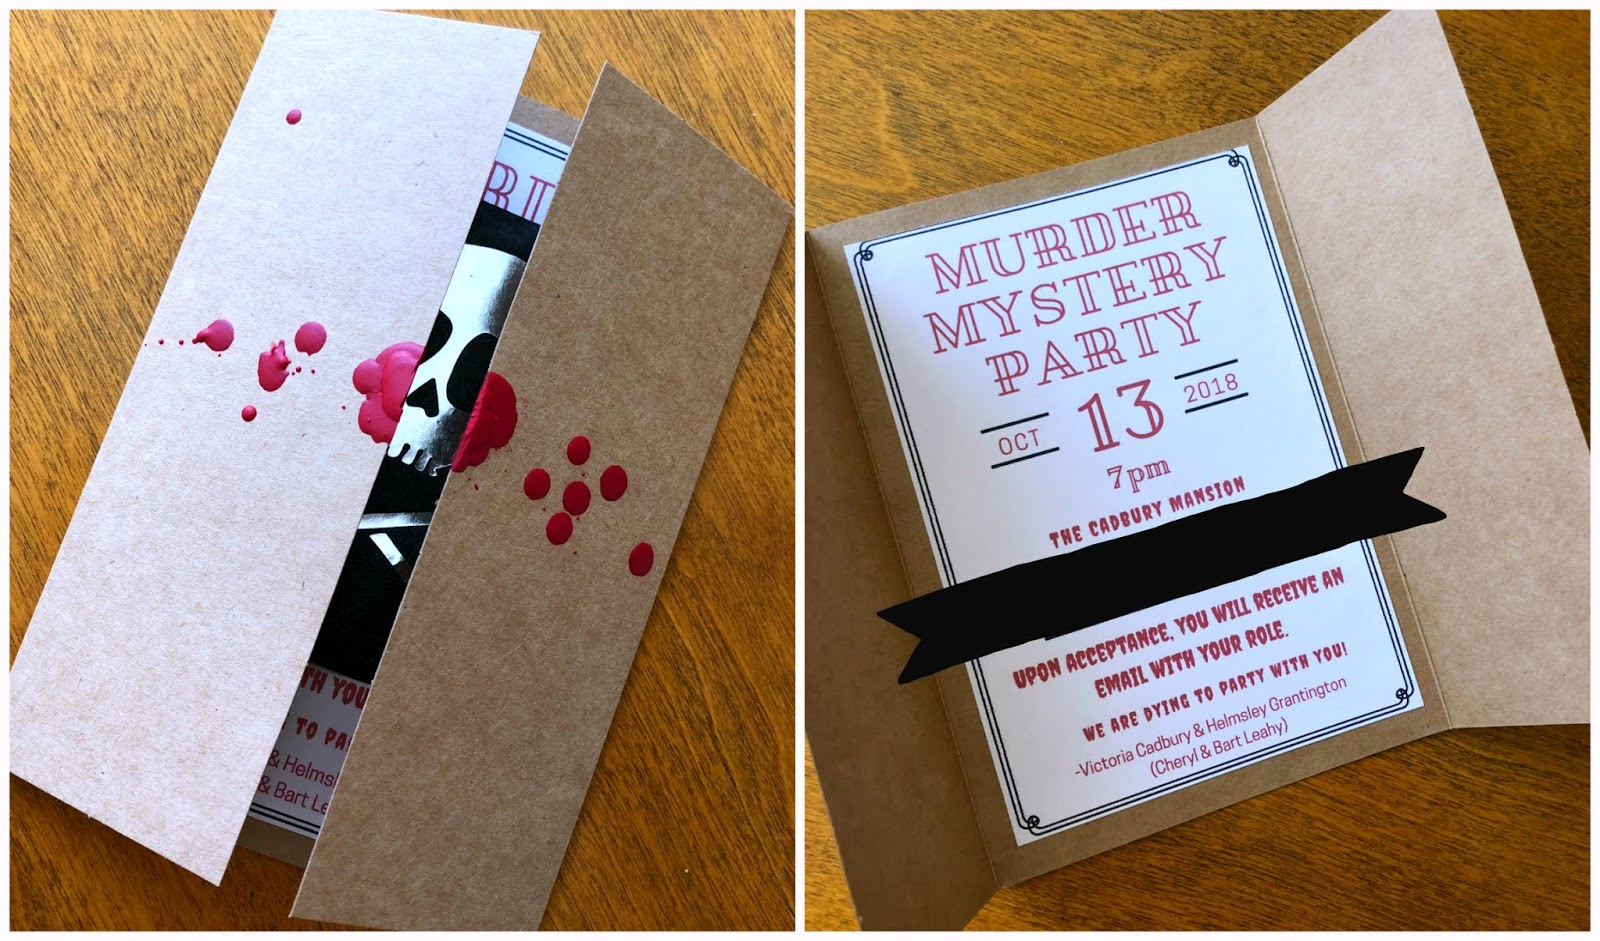 Murder Mystery Party DIY Invitations